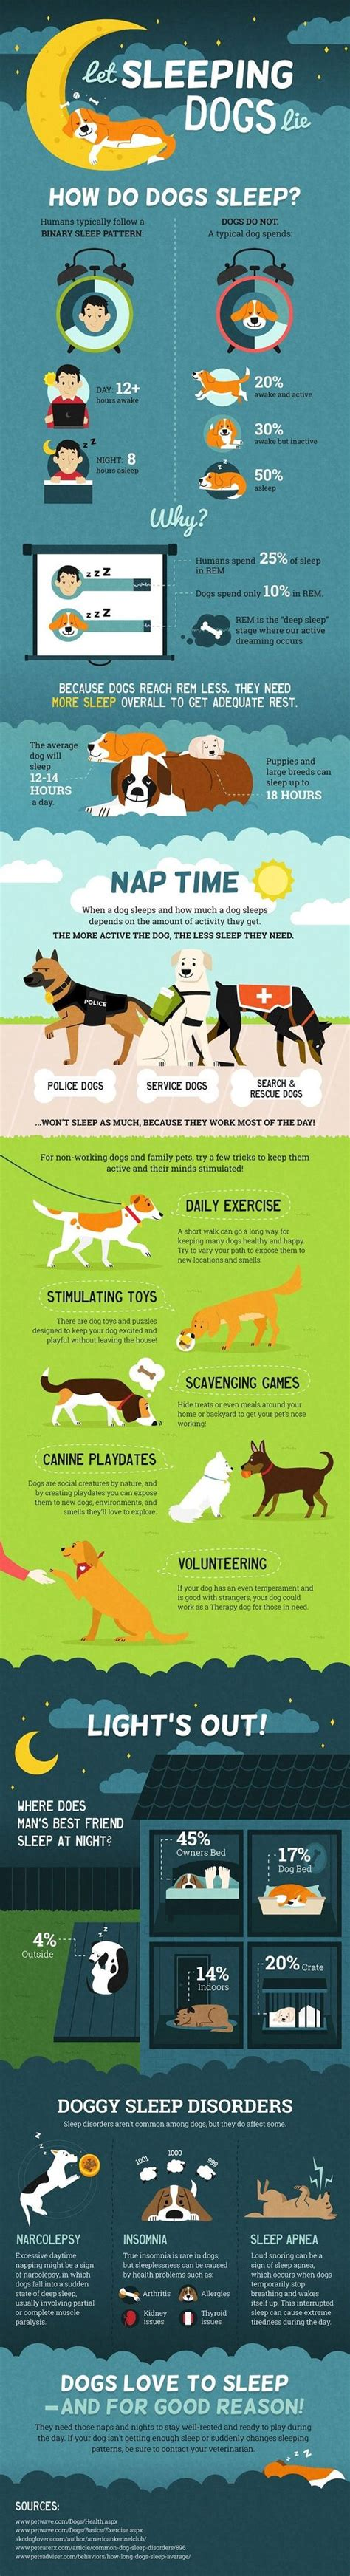 do dogs sleep how do dogs sleep infographic sles